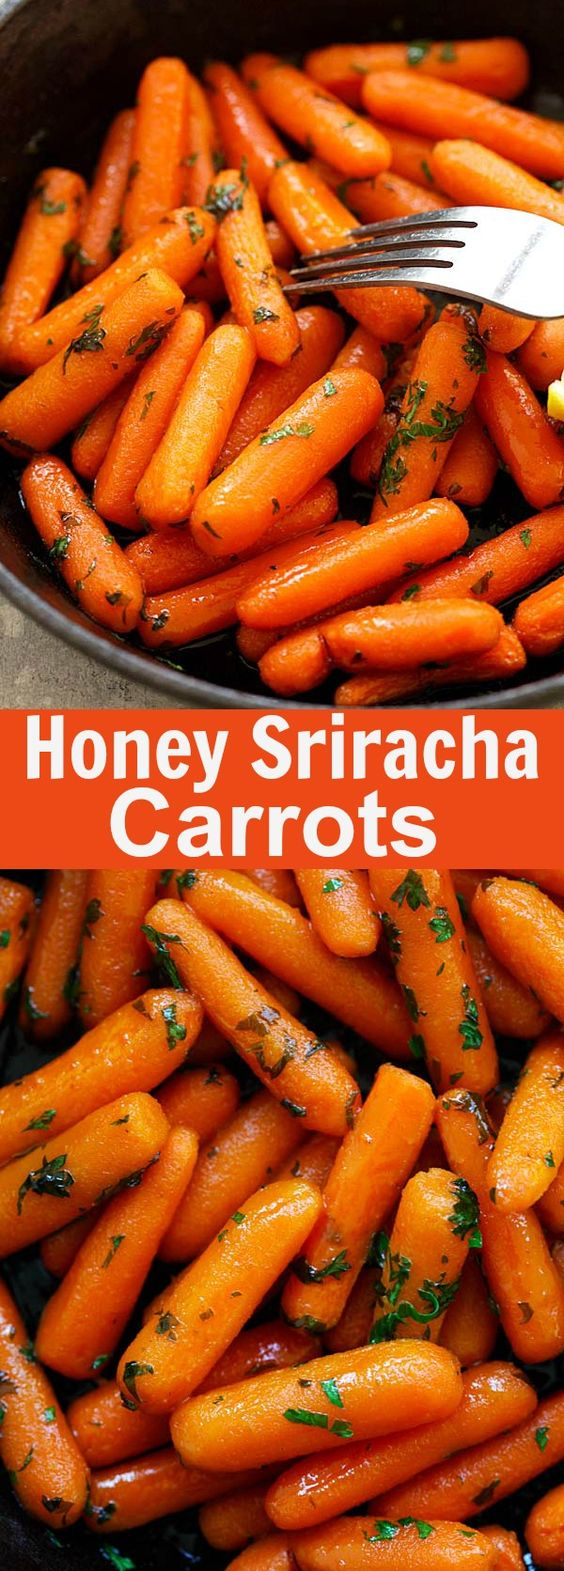 Honey Sriracha Roasted Carrots - Roasted baby carrots in a sweet and spicy honey sriracha glaze. So easy and delicious, takes only 10 mins active time | rasamalaysia.com